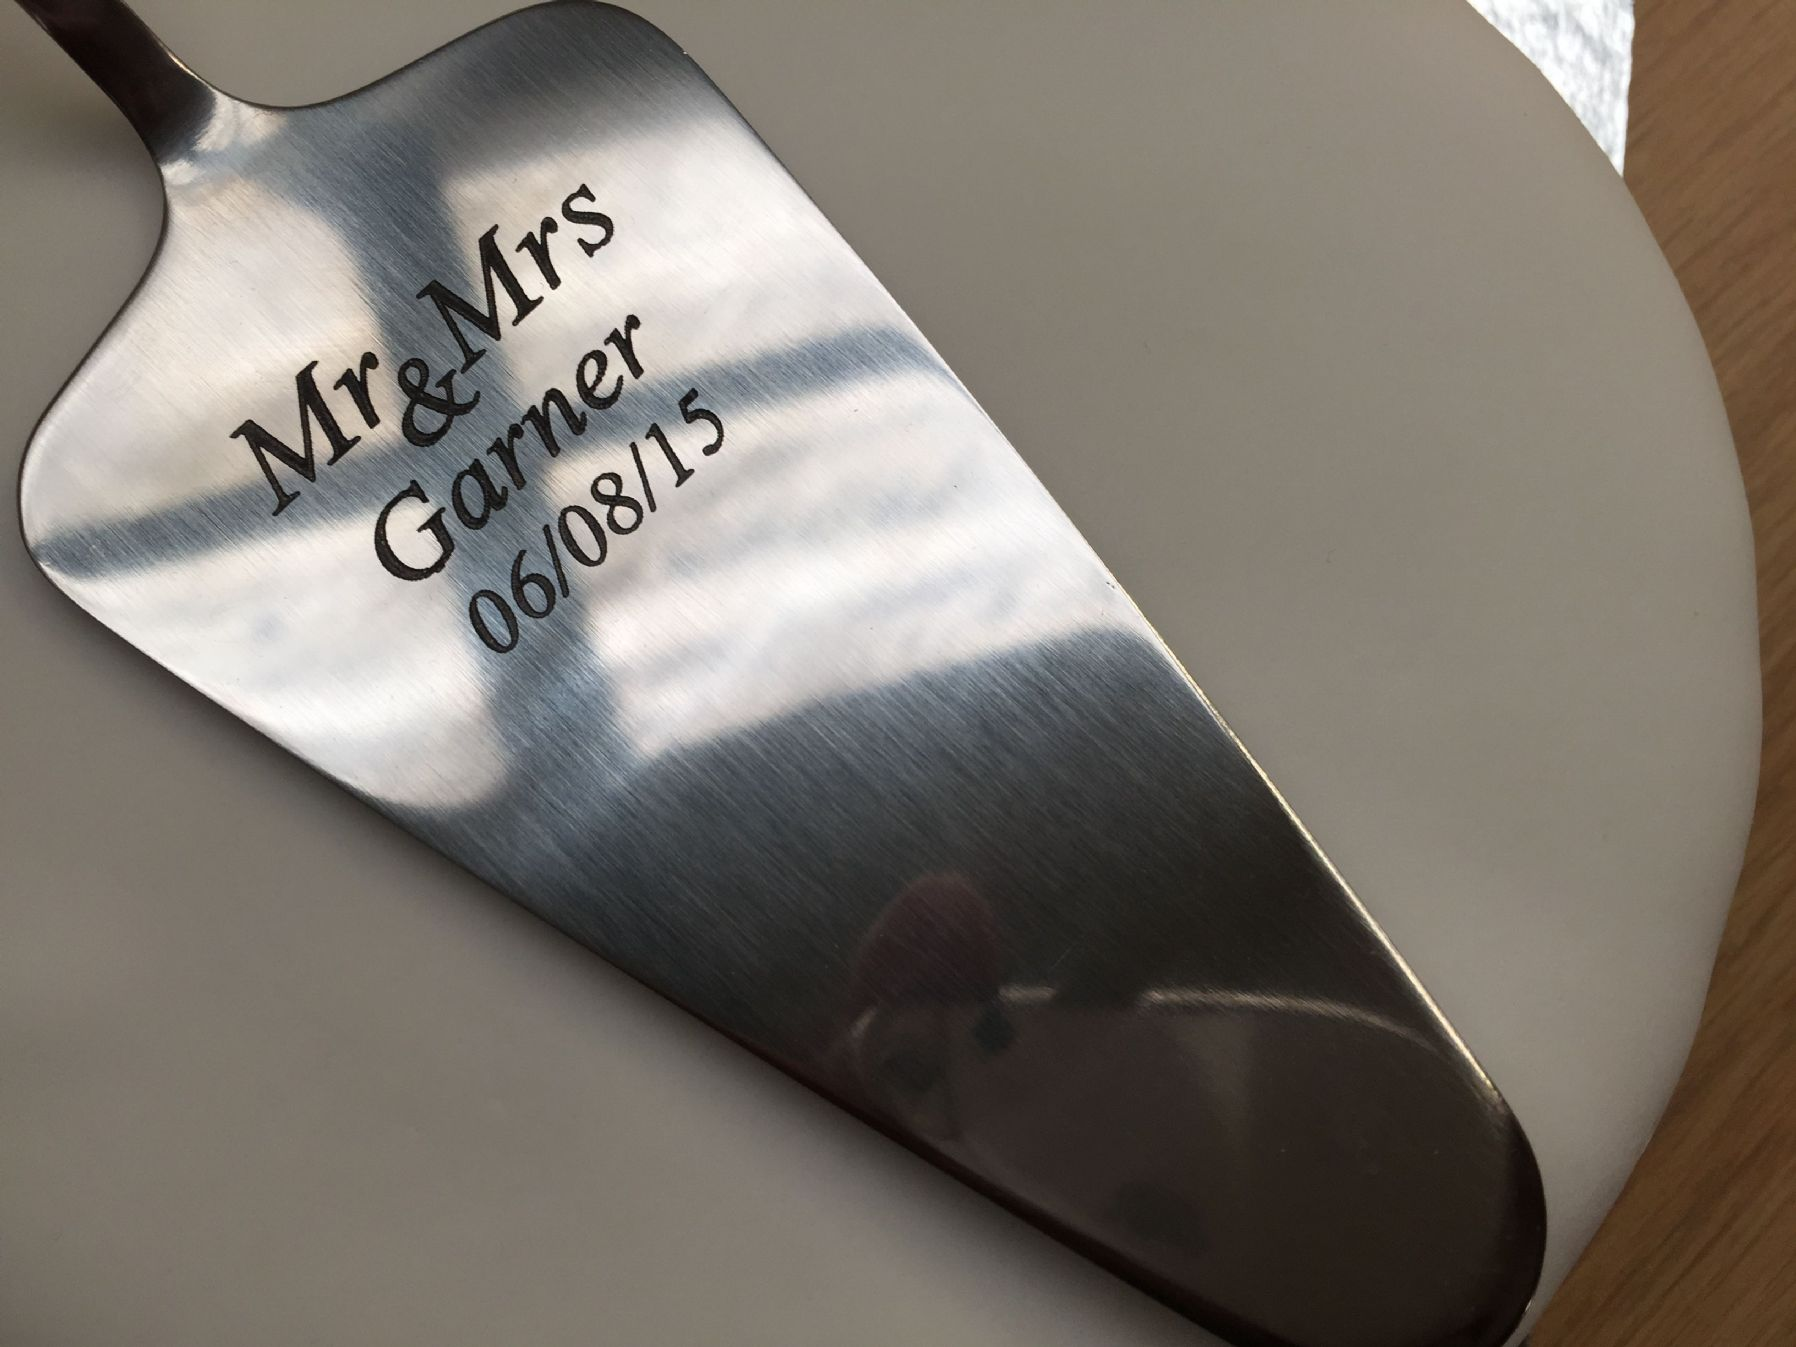 stainless steel kitchen racks chair pads pottery barn personalised wedding cake slicer